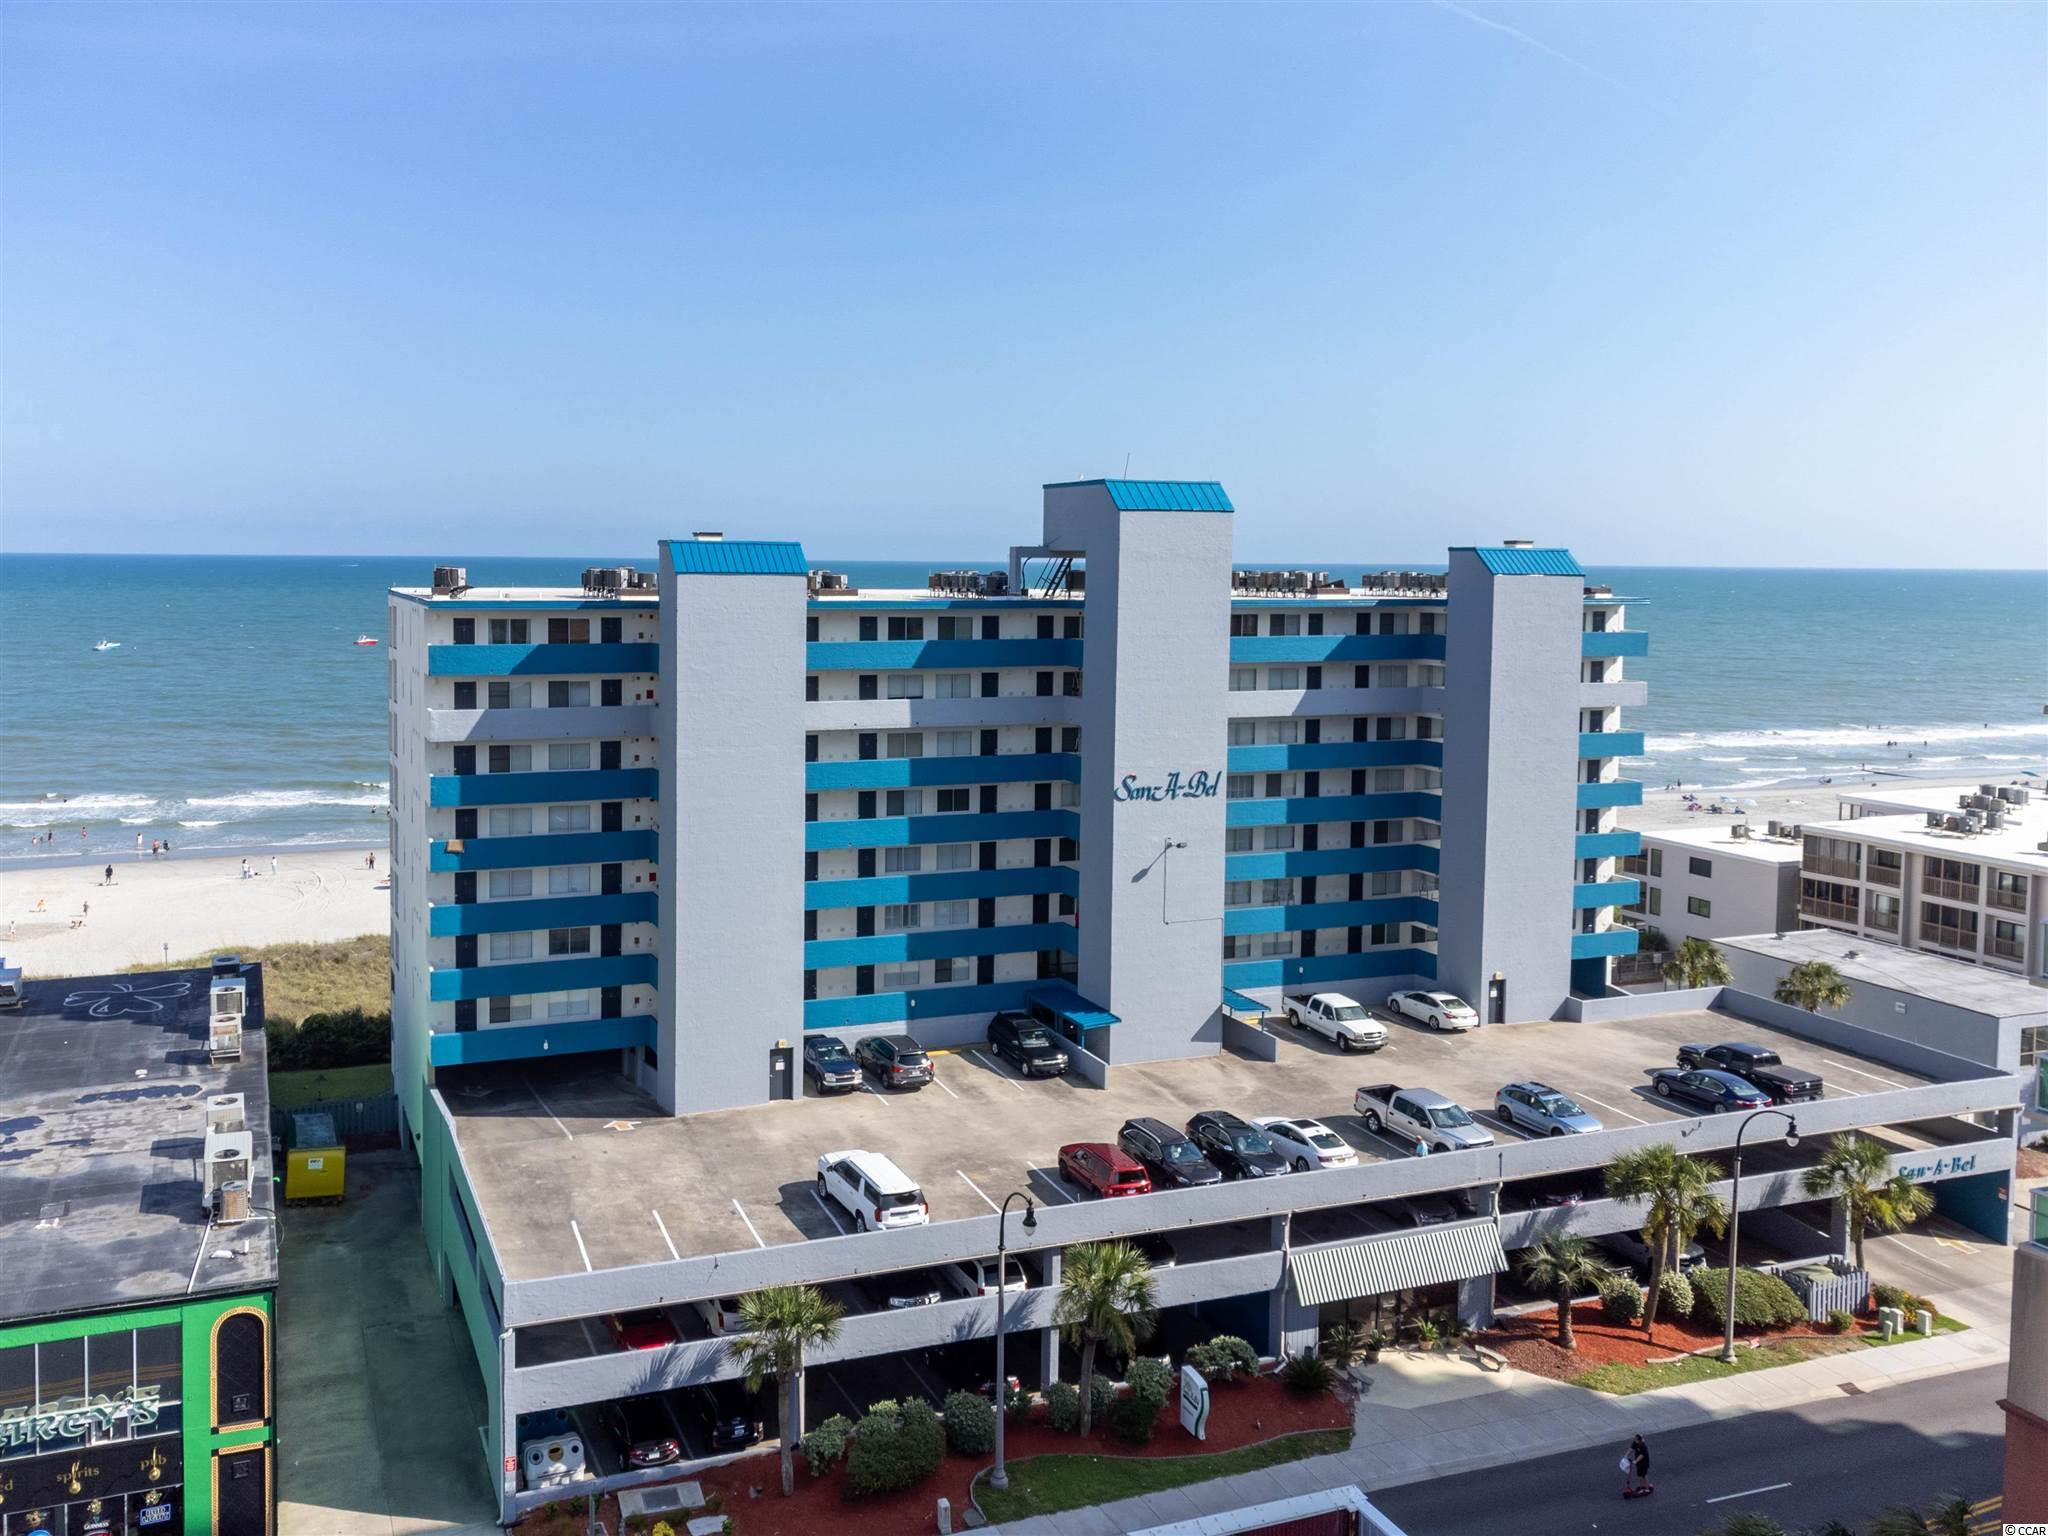 Direct Ocean Front... North Myrtle Beach... Crescent Beach Section... Spectacular 2 Bedroom 2 Bath Direct Ocean Front Unit Located in Well Sought after San-A-Bel Towers Ocean Front Resort... Enter this Nicely Maintained Unit Greeted by Upgraded Flowing Tile Floors...  Each Bedroom Offers a Private Full Bath with the Ocean Front Master Bedroom Overlooking the Great Atlantic Ocean...  Large Balcony with Direct Views of the Ocean, Surf, and Sandy Beaches... Fully Furnished includes all Appliances, Furniture, Decor, Kitchenware, Window Treatments and Newer A/C Unit... San-A-Bel Towers Features Swimming Pool, Hot Tub and Workout Facility...  Close to Shoppes, Dining, Sports Grills, Fishing, Golf, Inlet, Marinas, Barefoot Resort, Entertainment, Restaurants, Casino Boats, Outlets, Malls, Little River Intra Coastal Waterway (ICW) Water Front and Most Spectacular White Sandy Blue Water Ocean Beaches of the Grand Strand... Your Time Has Come!